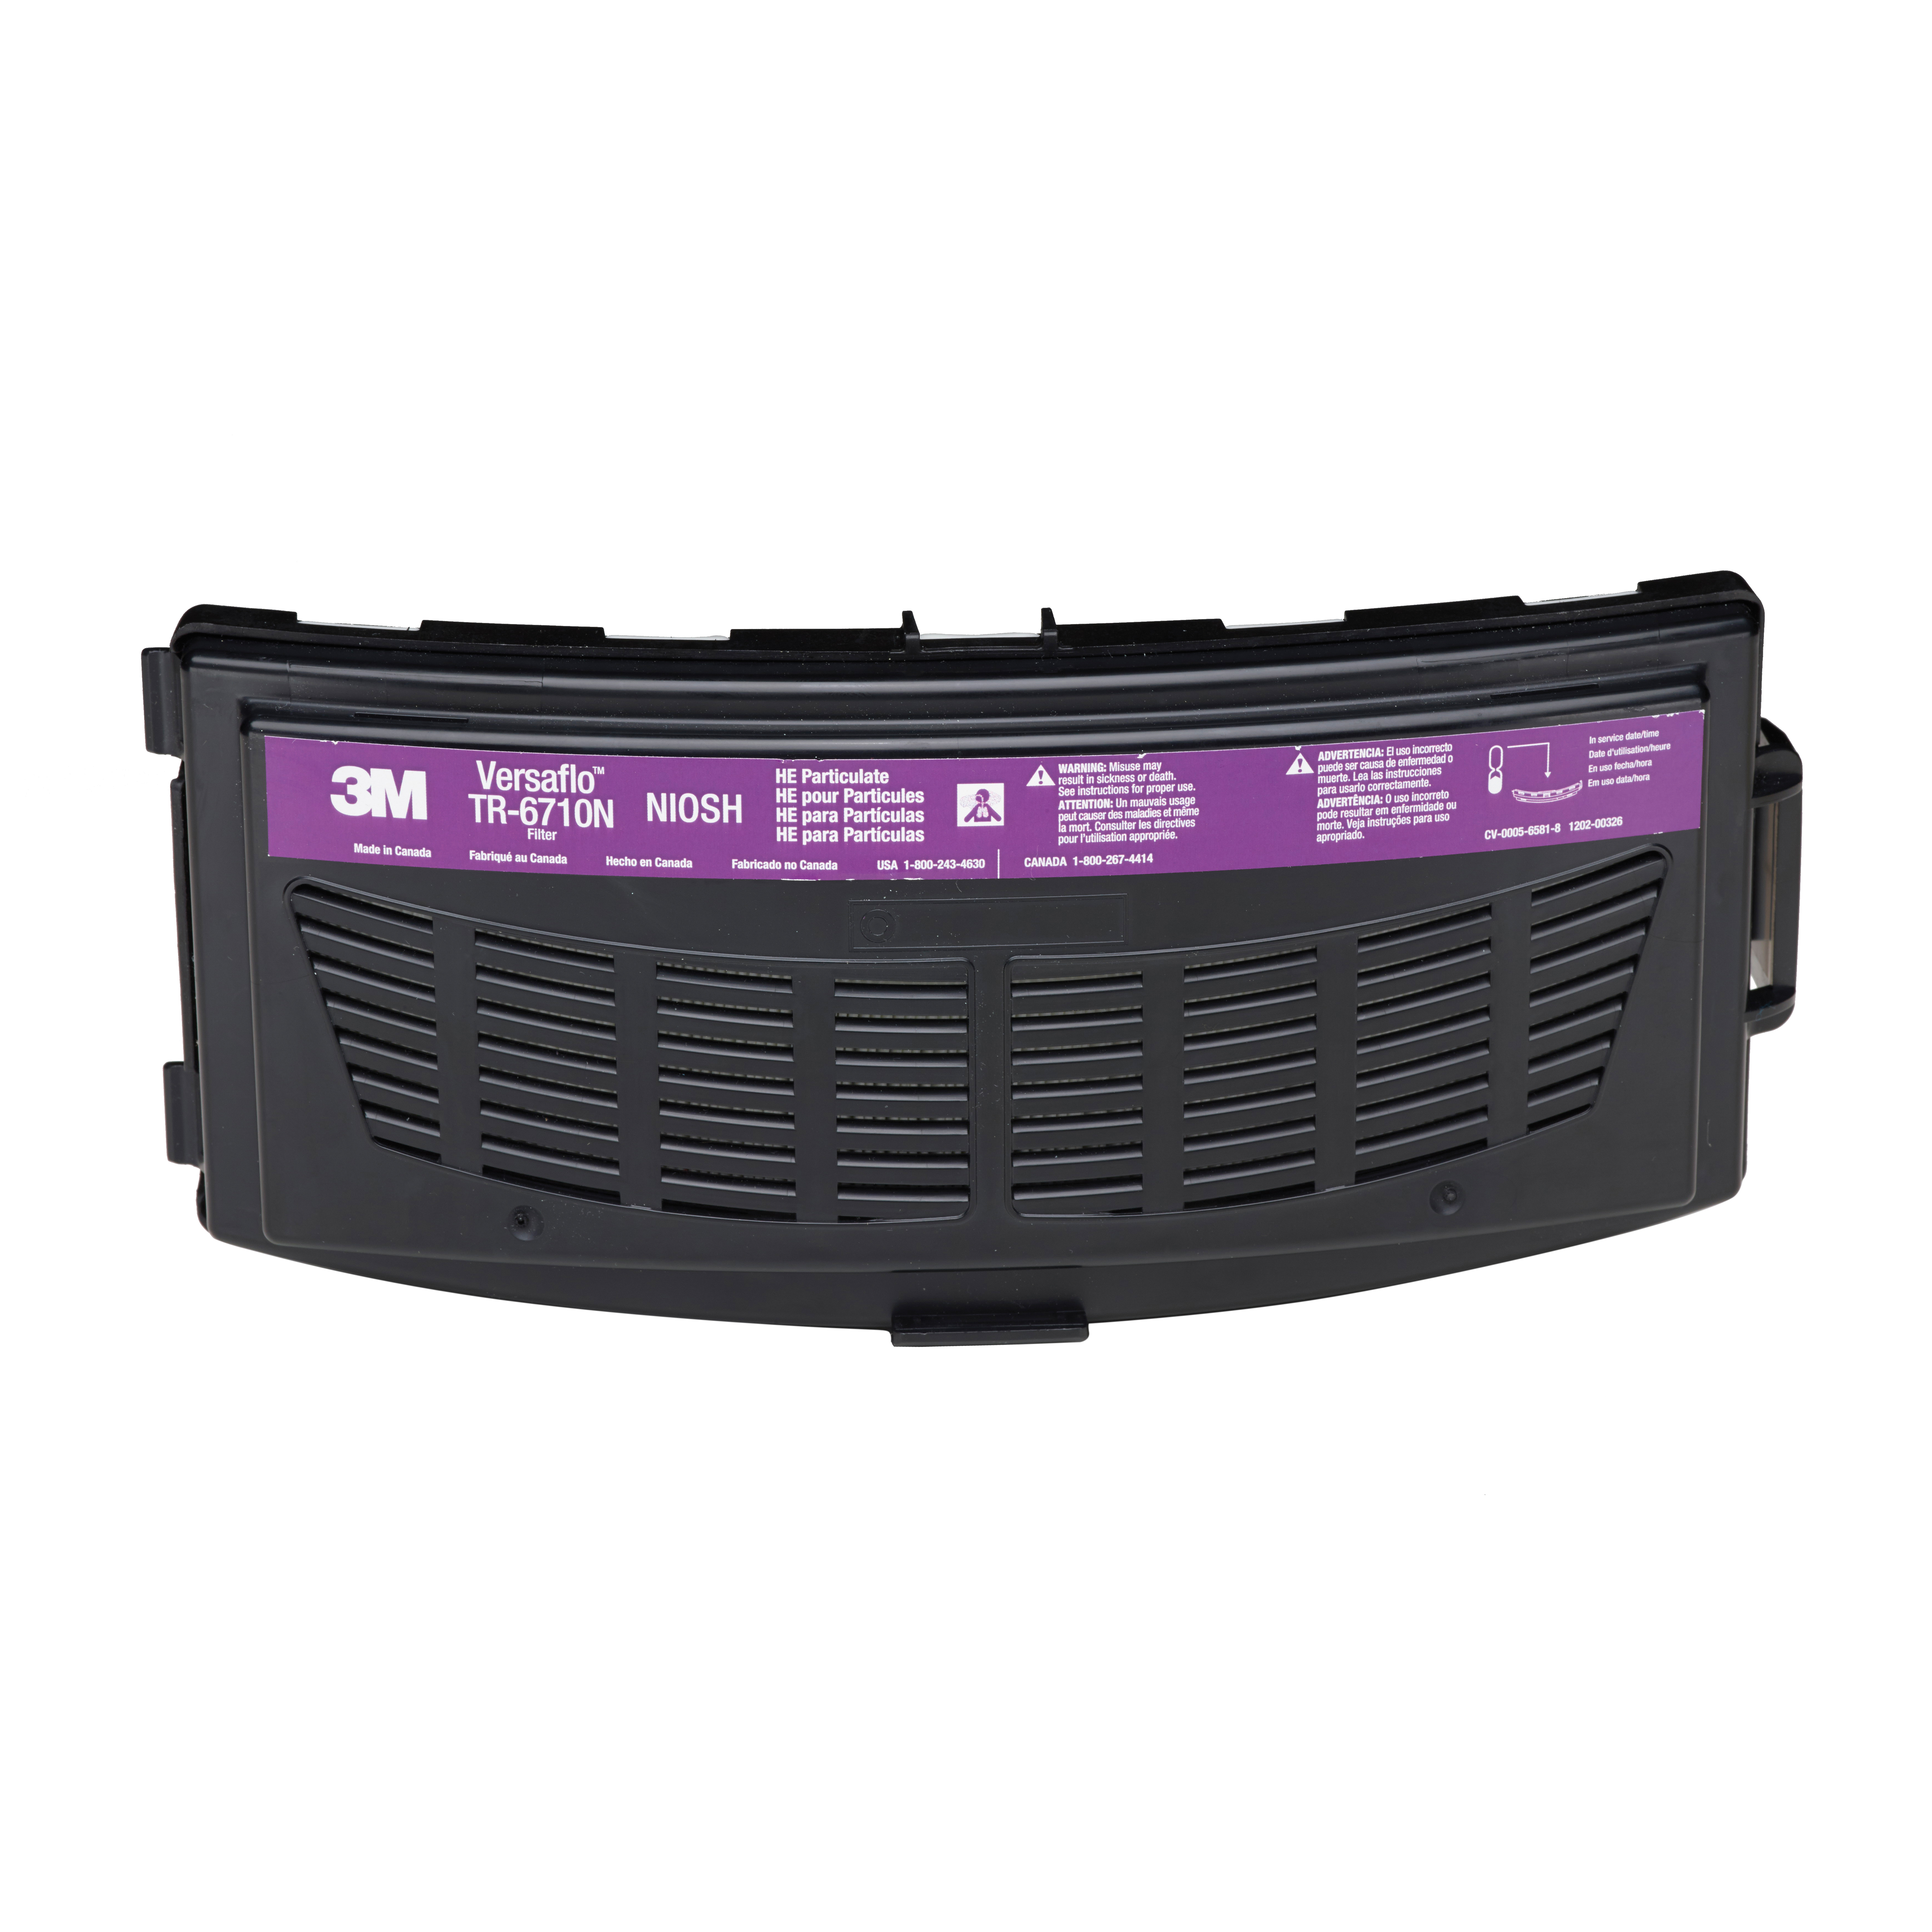 3M™ 051131-37357 TR Series HEPA Filter, For Use With Versaflo™ TR-600 Series PAPRs